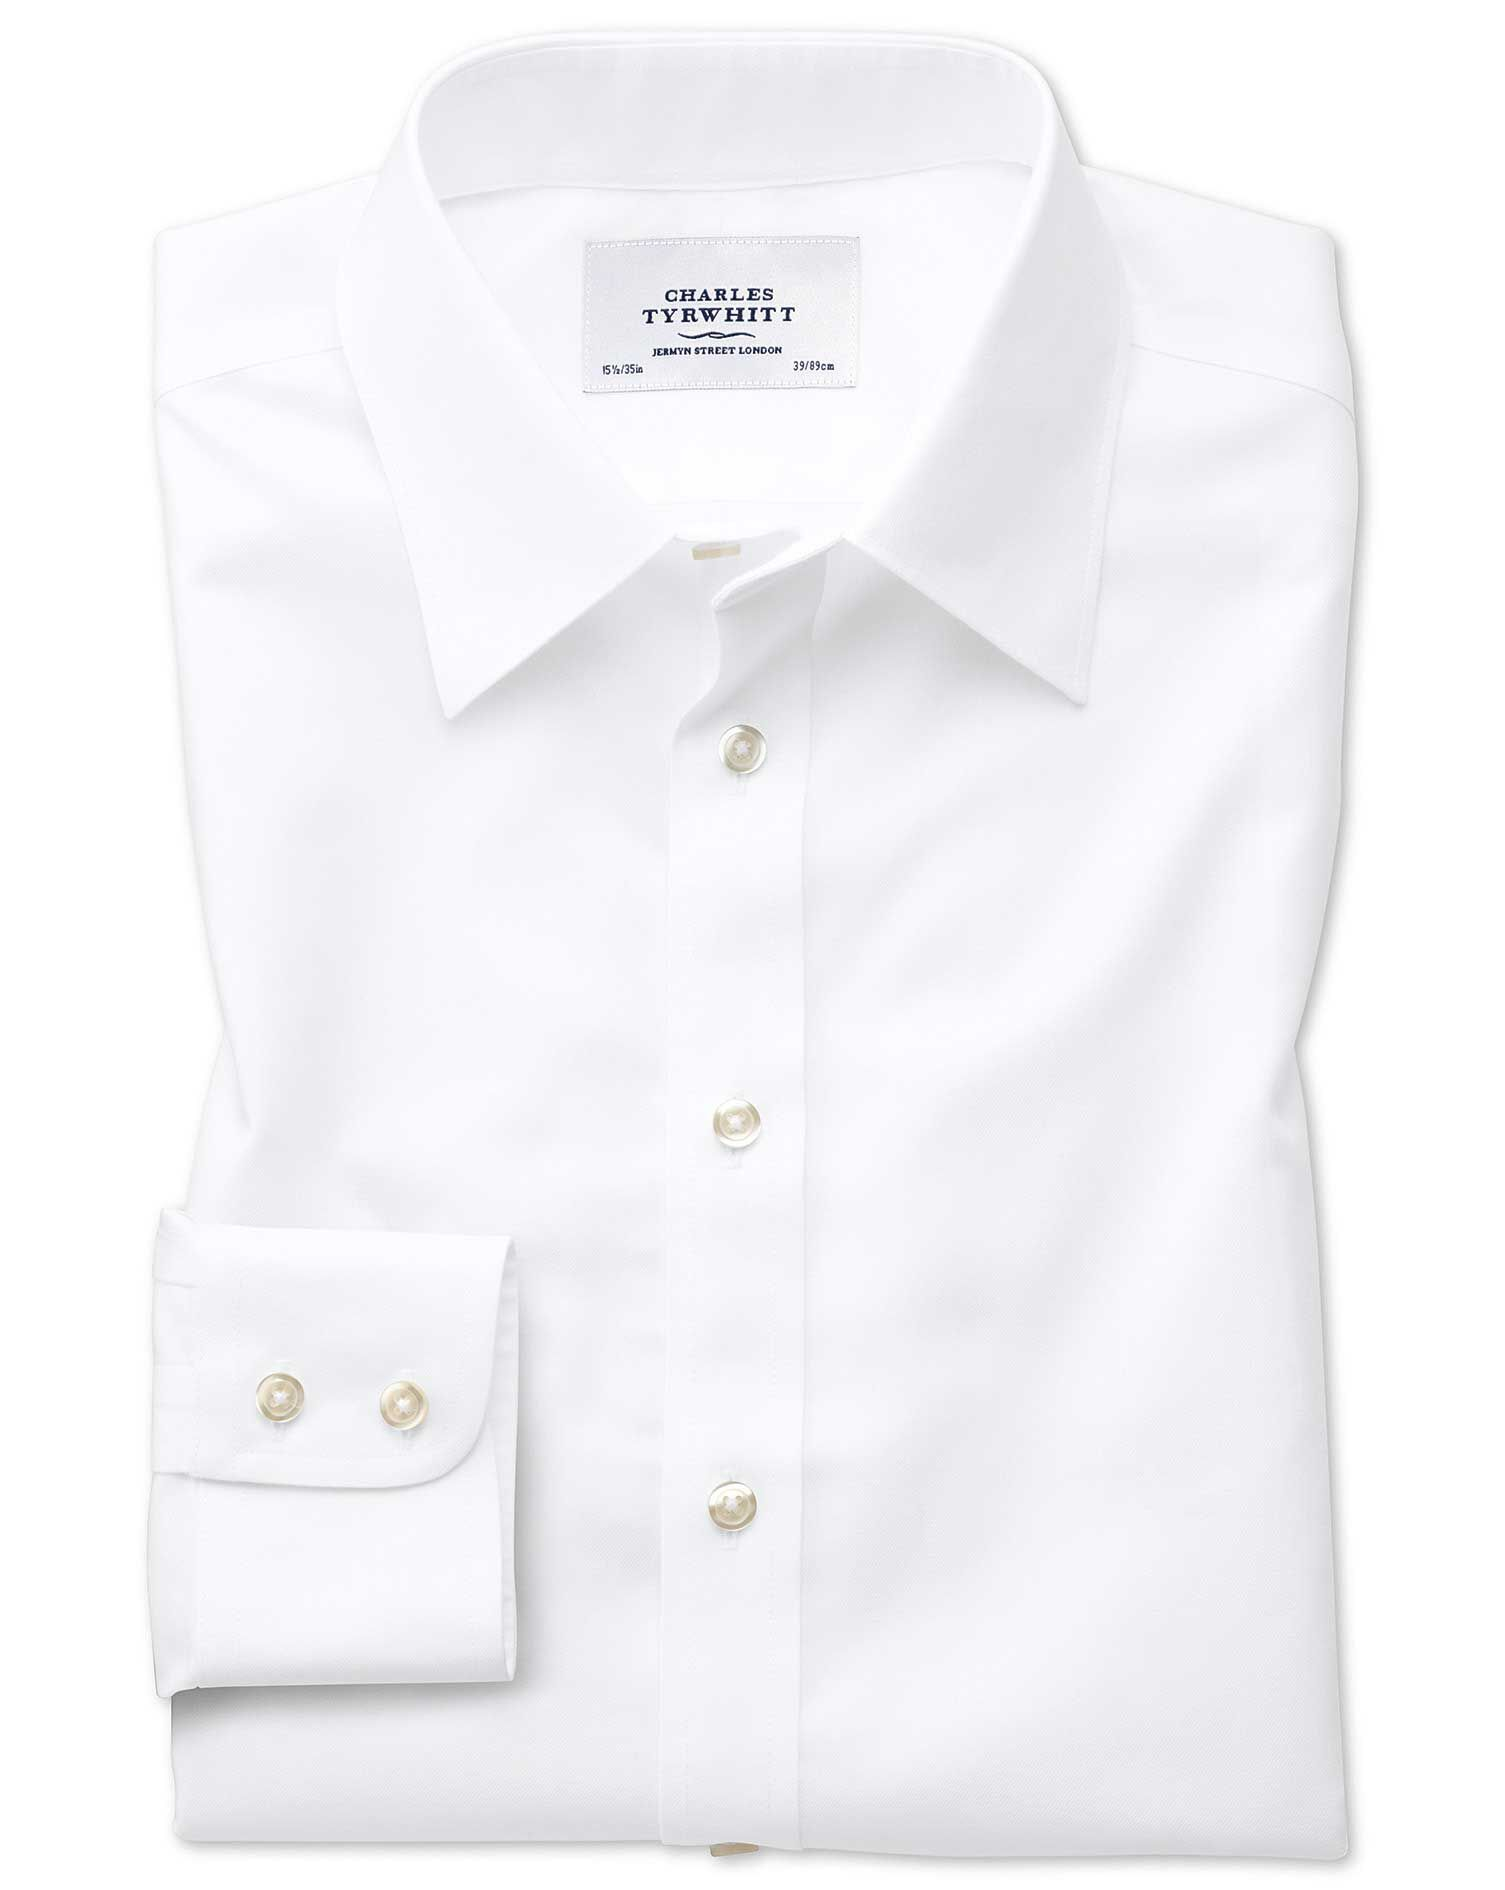 Slim Fit Forward Point Collar Non-Iron Twill White Cotton Formal Shirt Single Cuff Size 16.5/34 by C